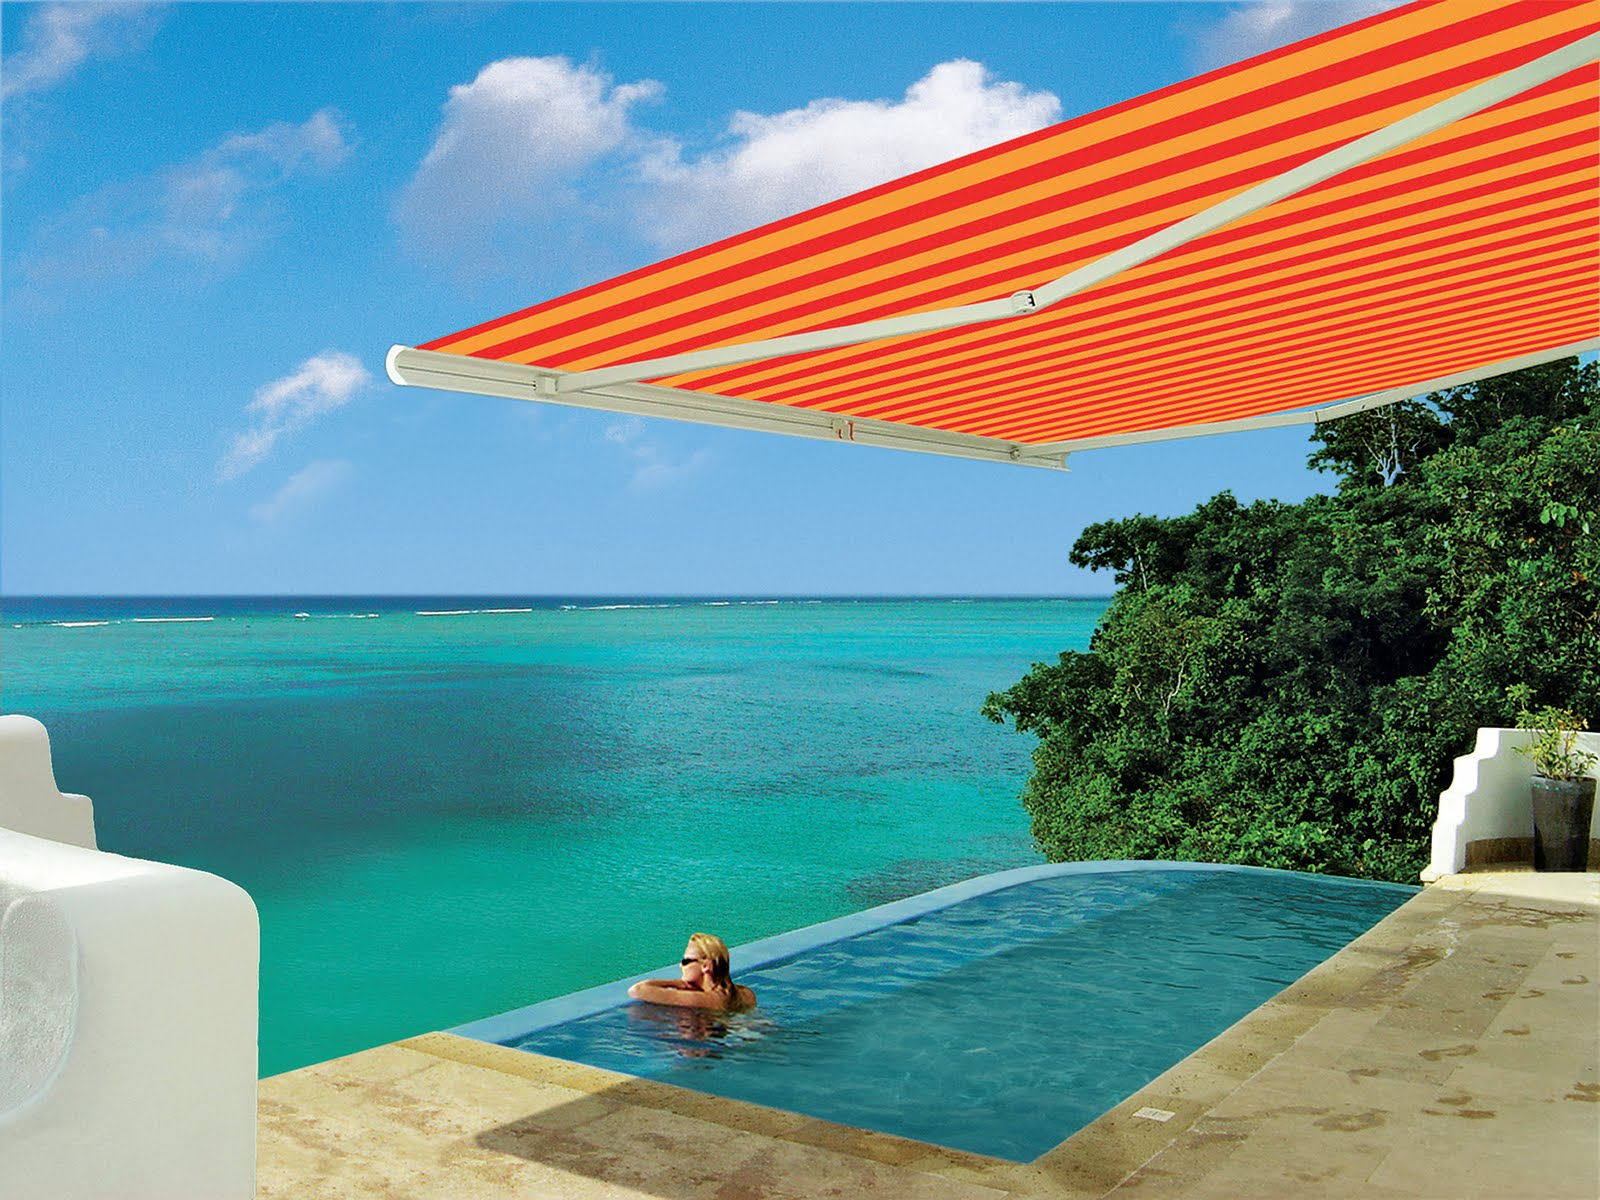 Retractable Awnings Are Versatile And Convenient For Any Outdoor Pool Or Hot  Tub. Enjoy The Sun And Outdoors No Matter What The Weather Conditions Are.